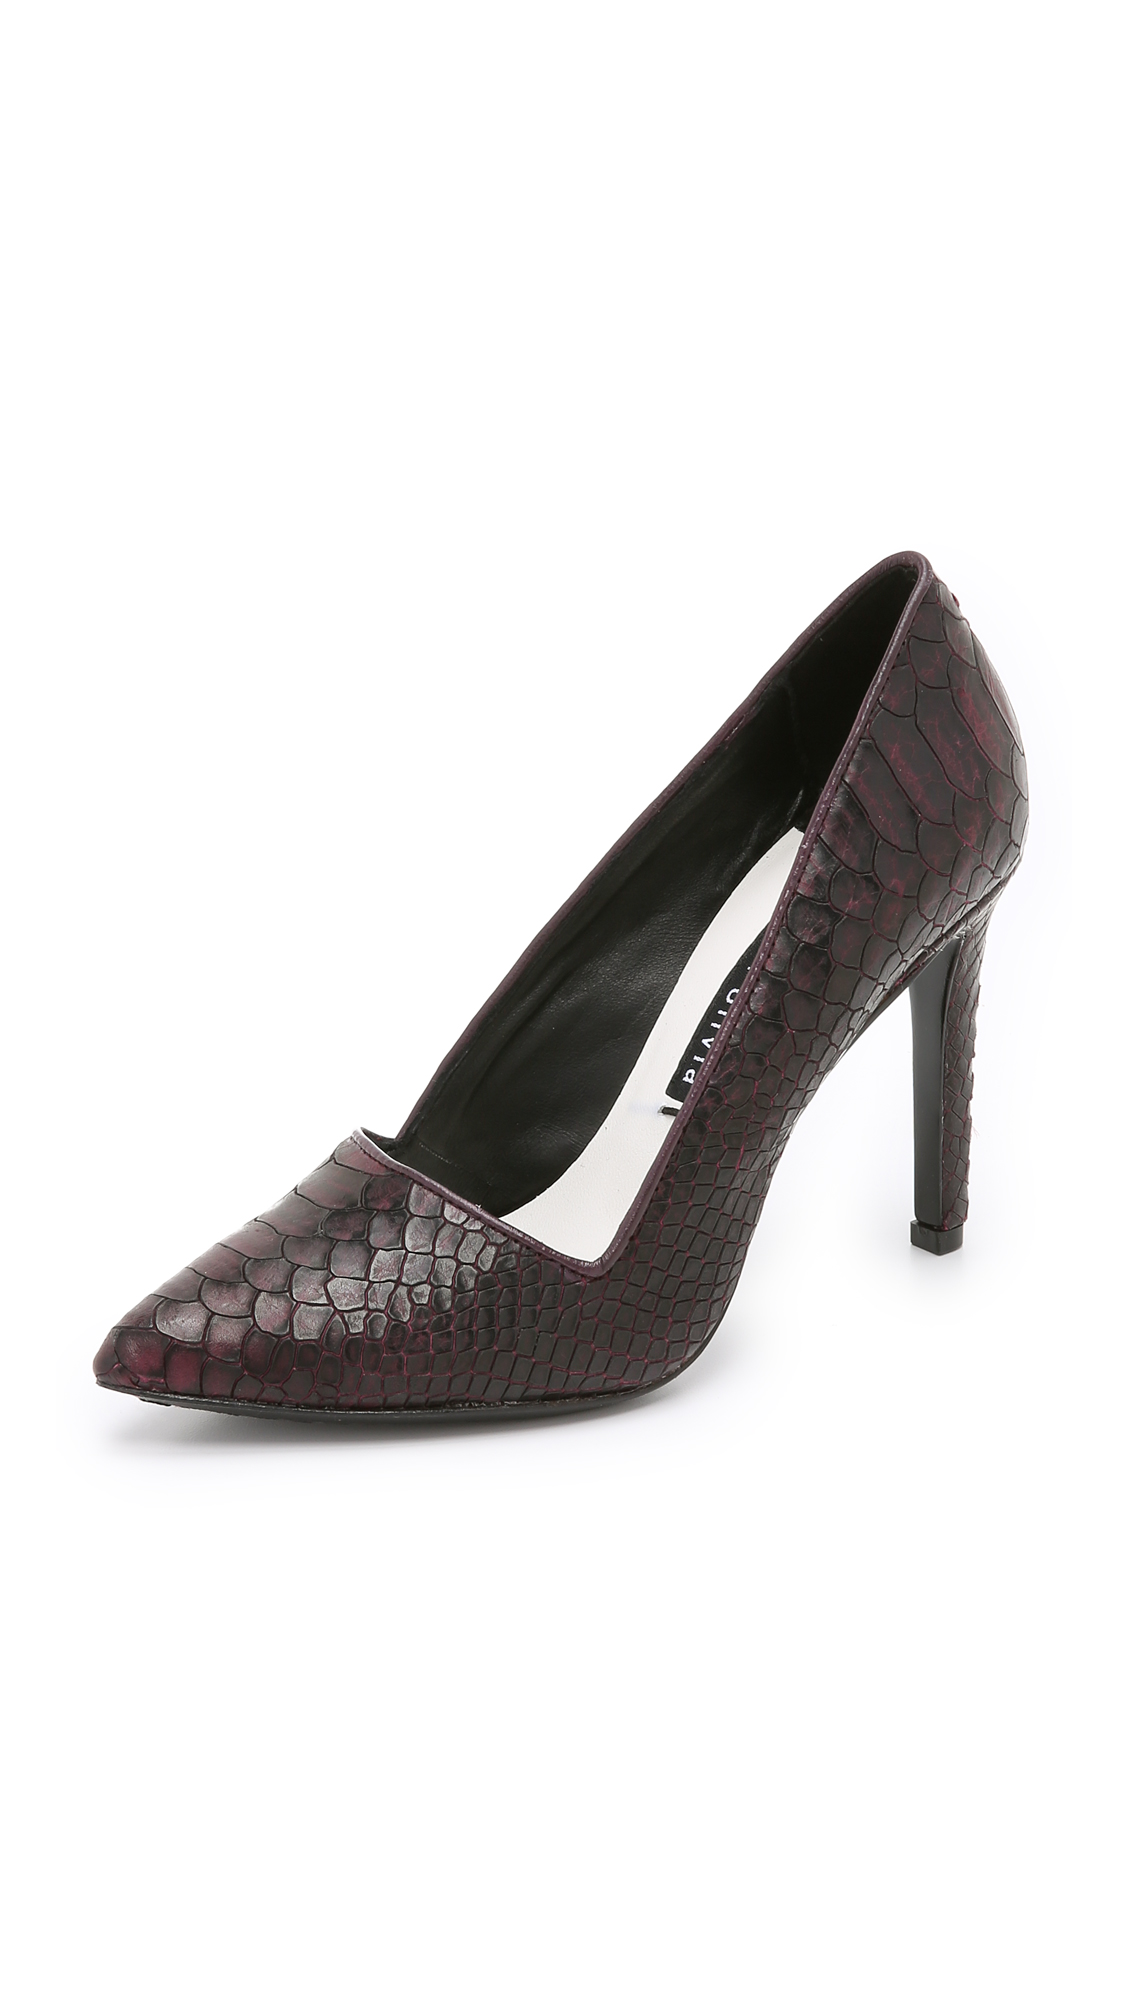 Alice And Olivia Dina Croc-embossed Leather Pumps In Bordeaux